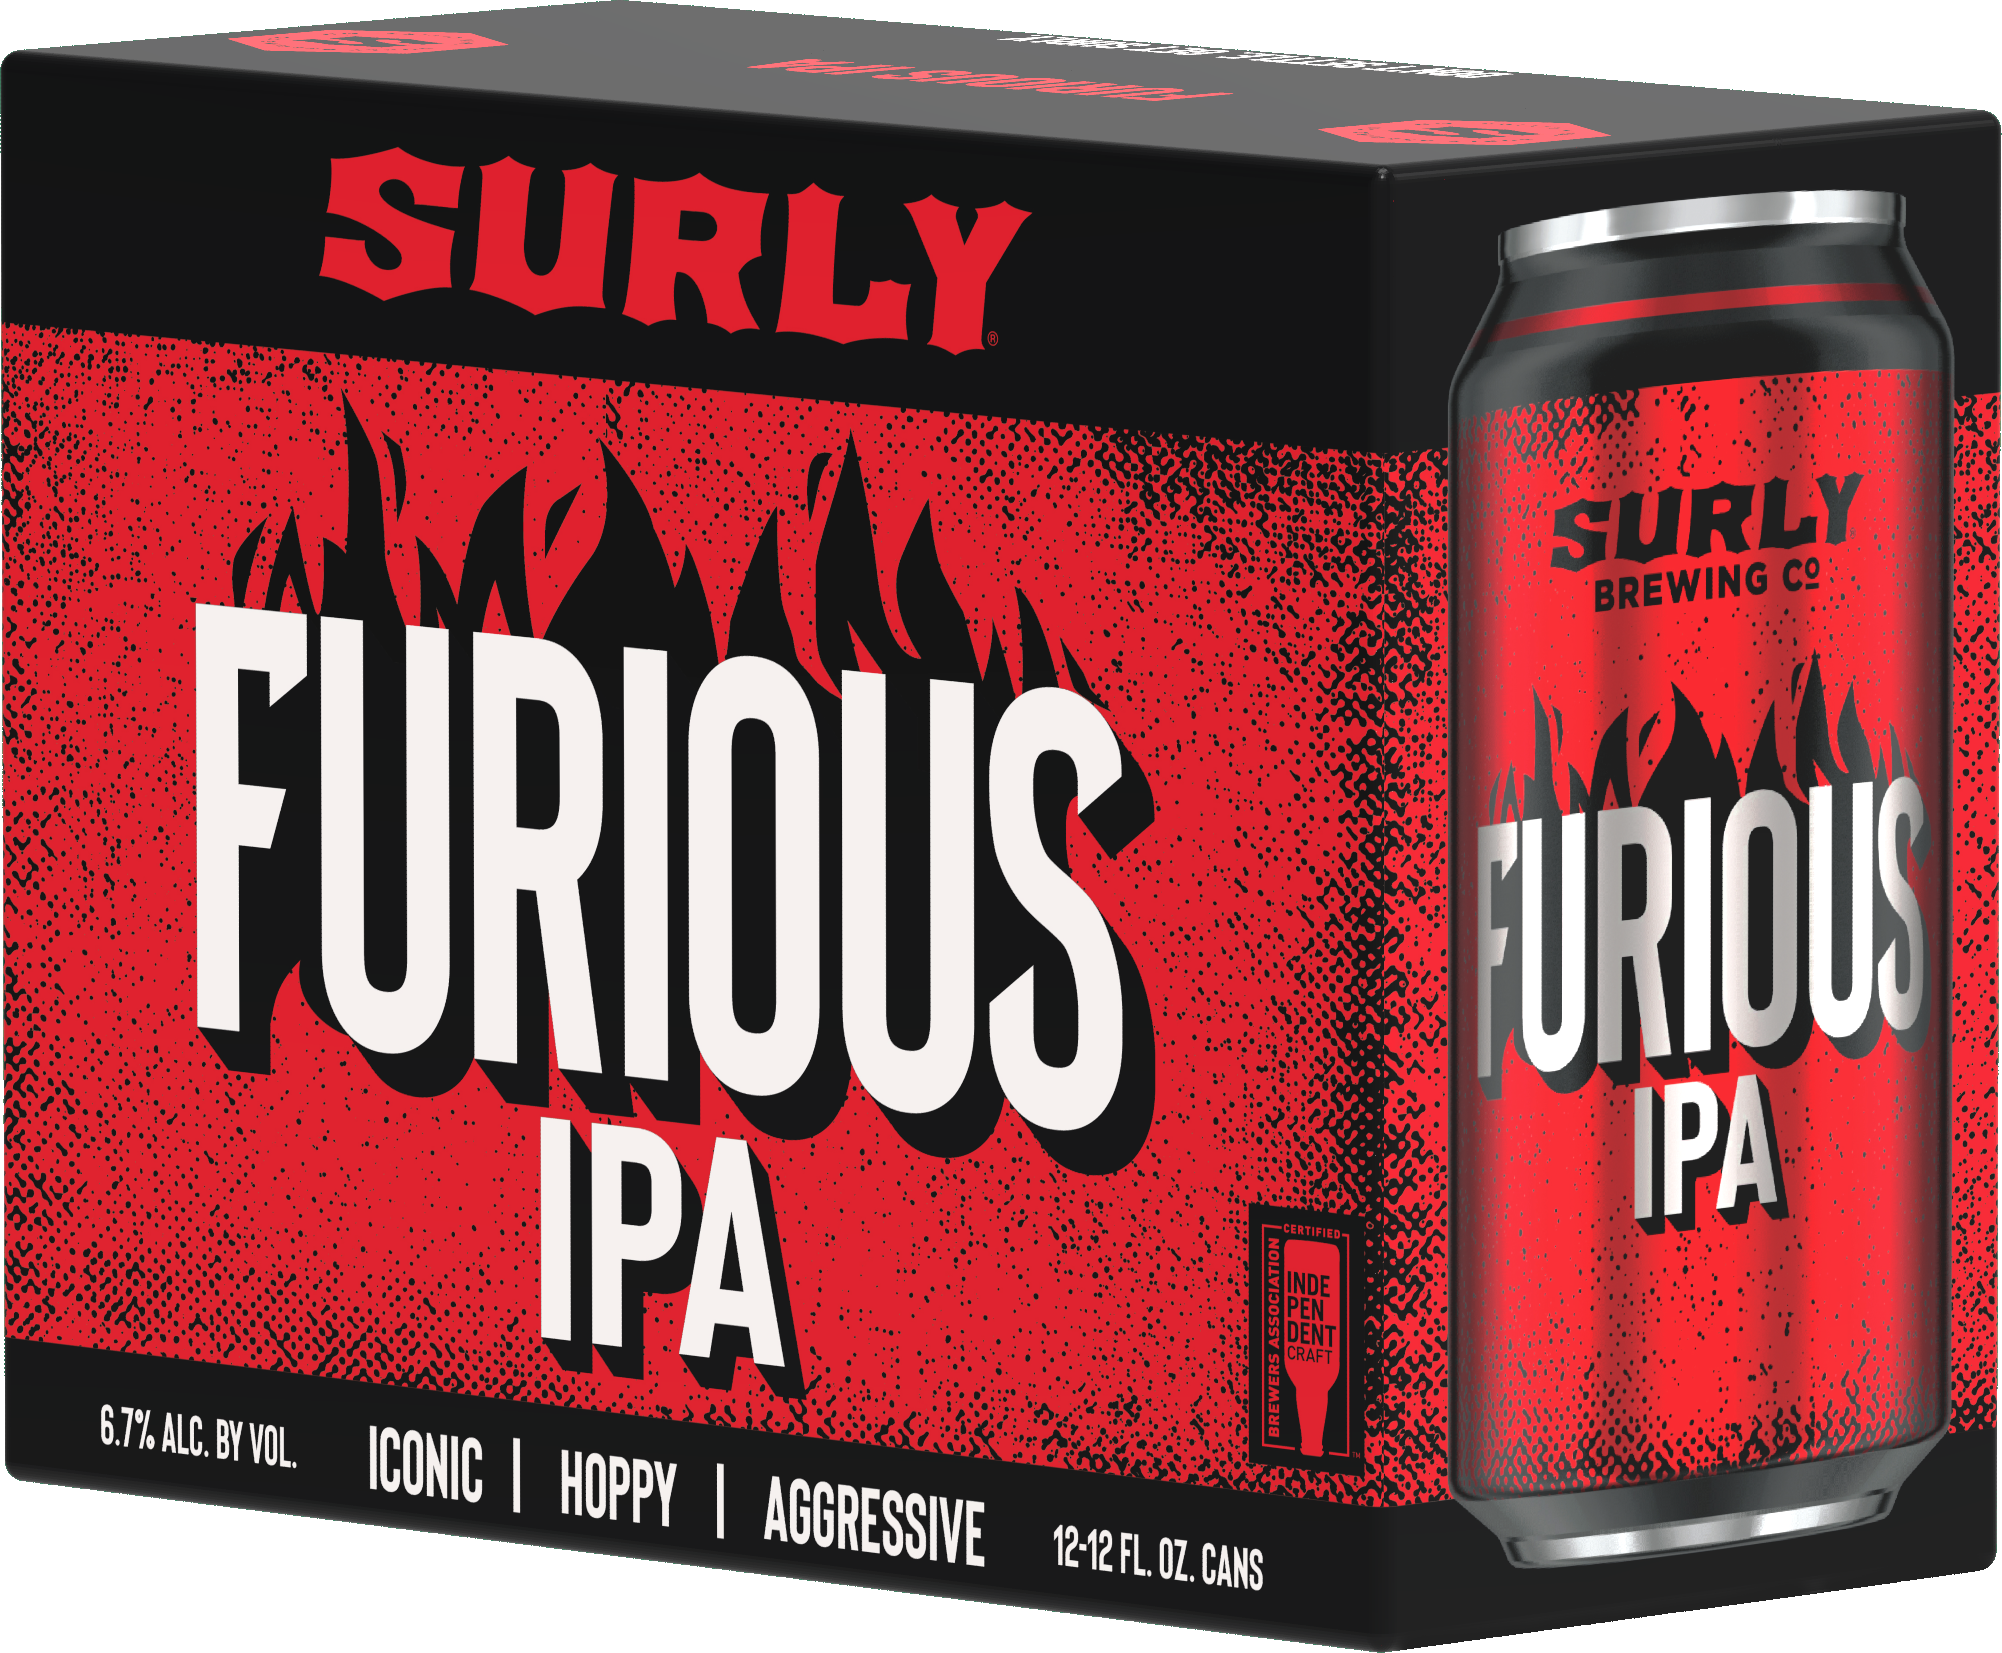 Surly Brewing Co. SURLY BREWING FURIOUS IPA 12 PK CANS